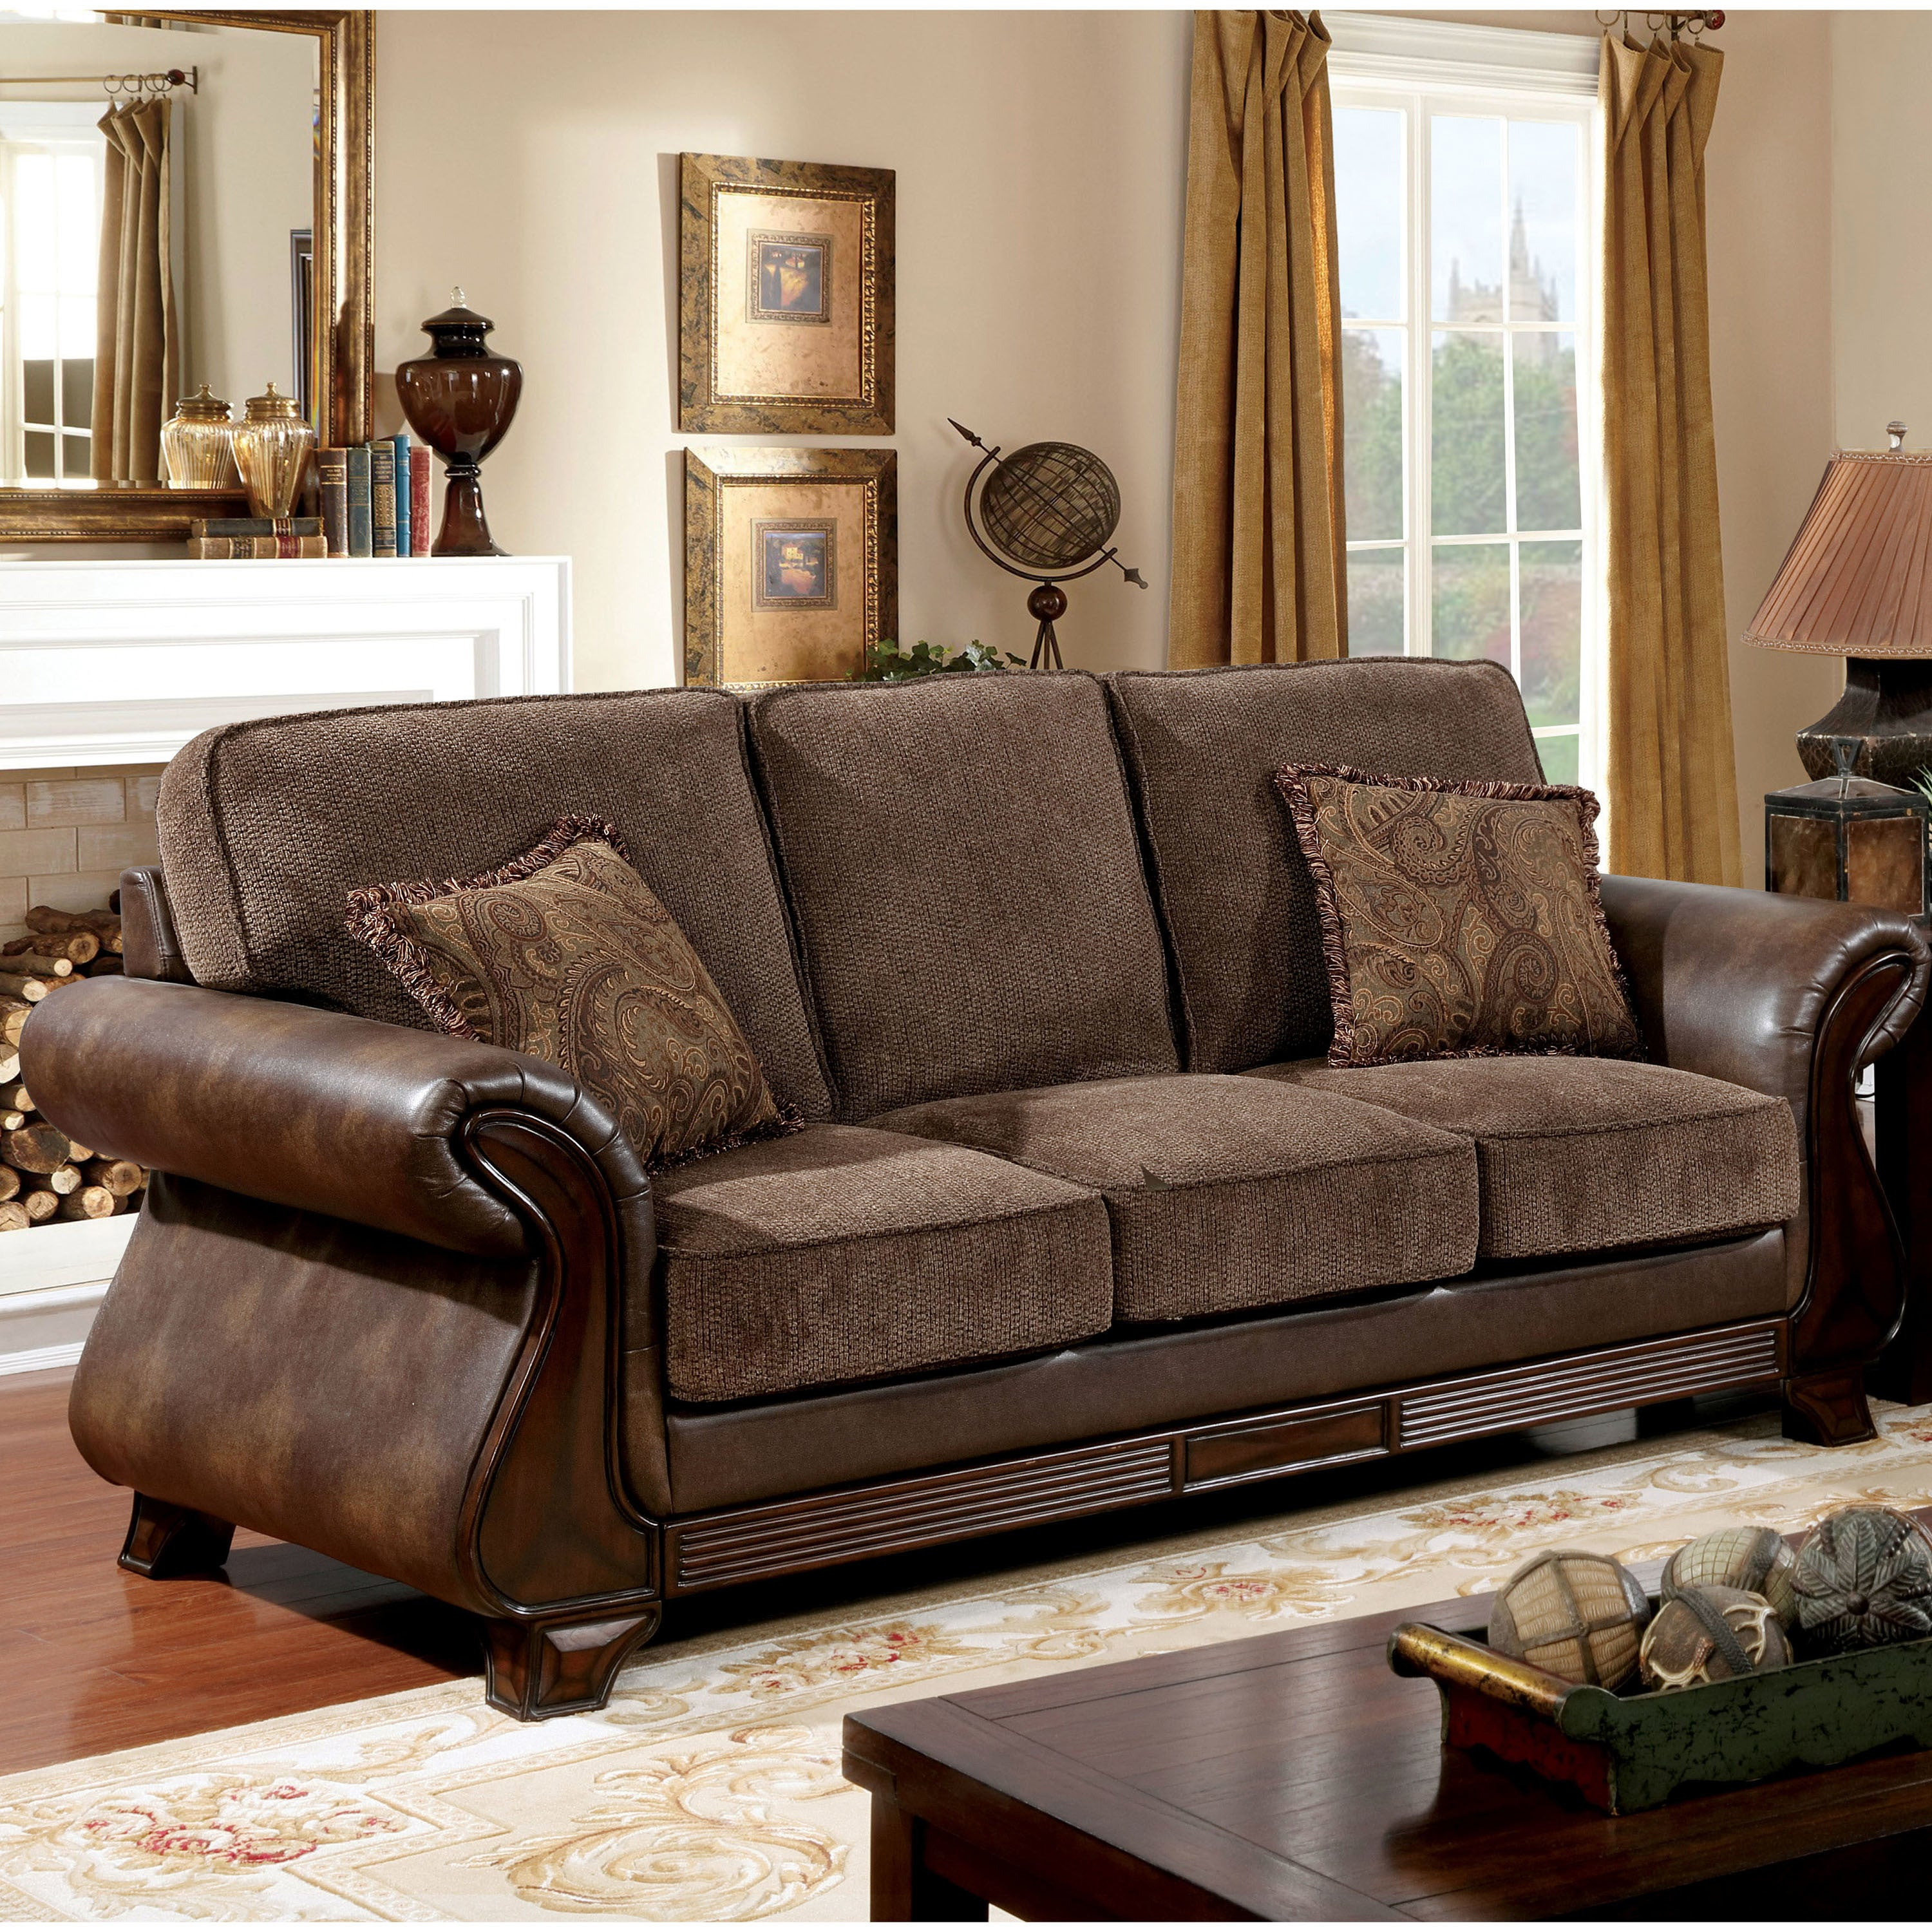 Furniture of america elyna microfiber and brown leather sofa